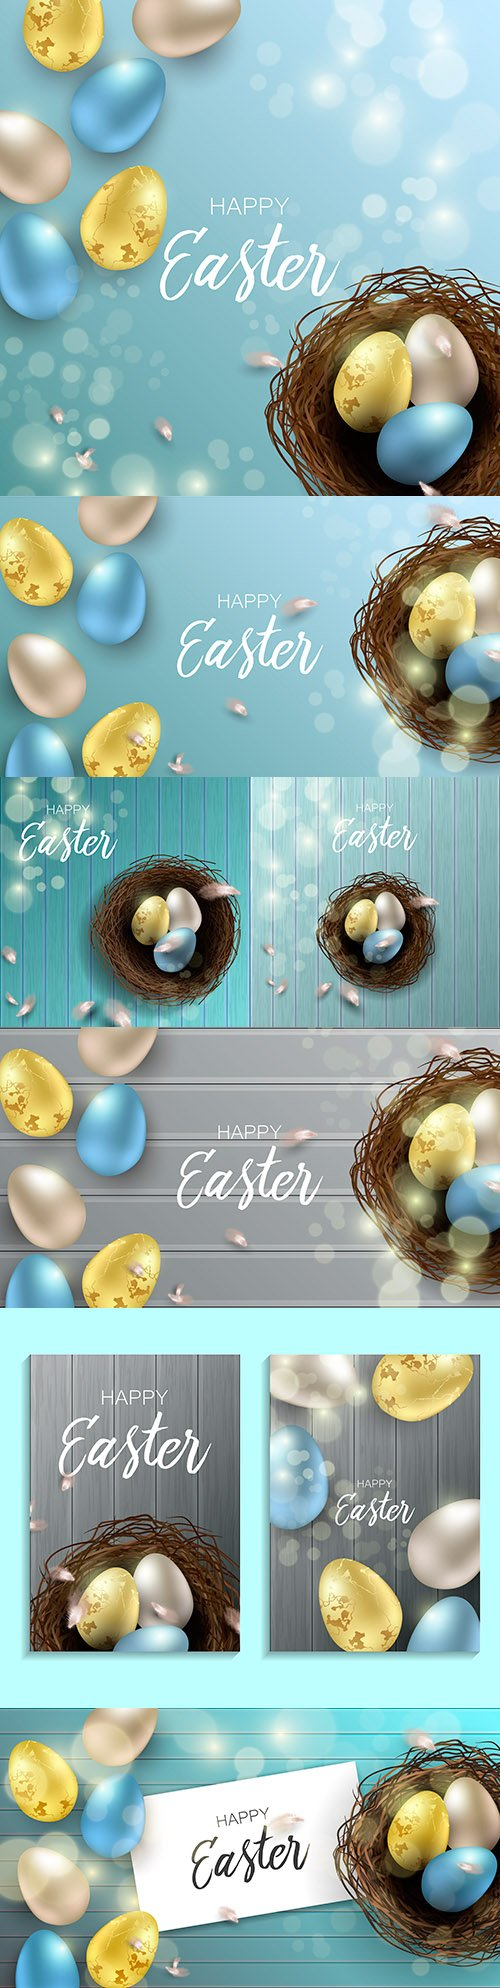 Easter eggs and chicken feathers realistic design